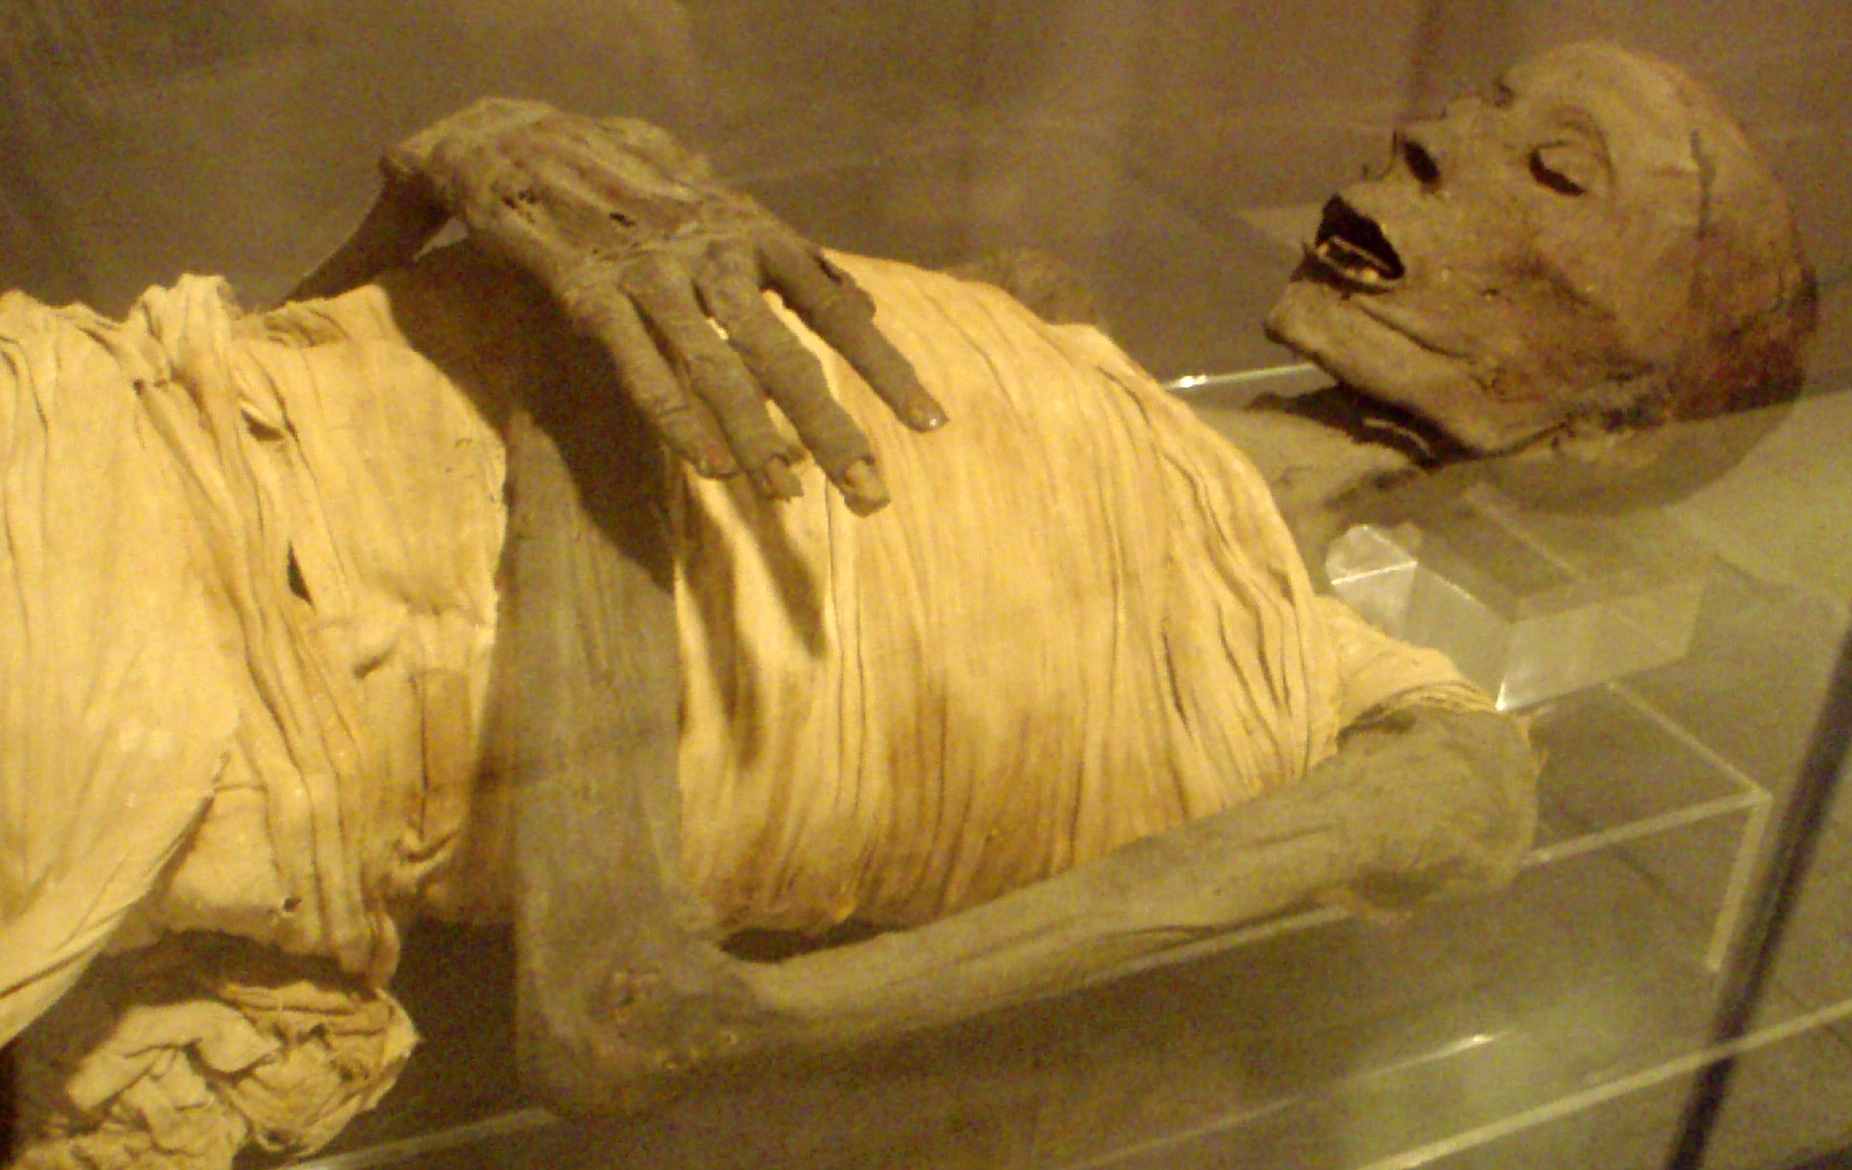 Mummy of an Upper-class Egyptian male from the...